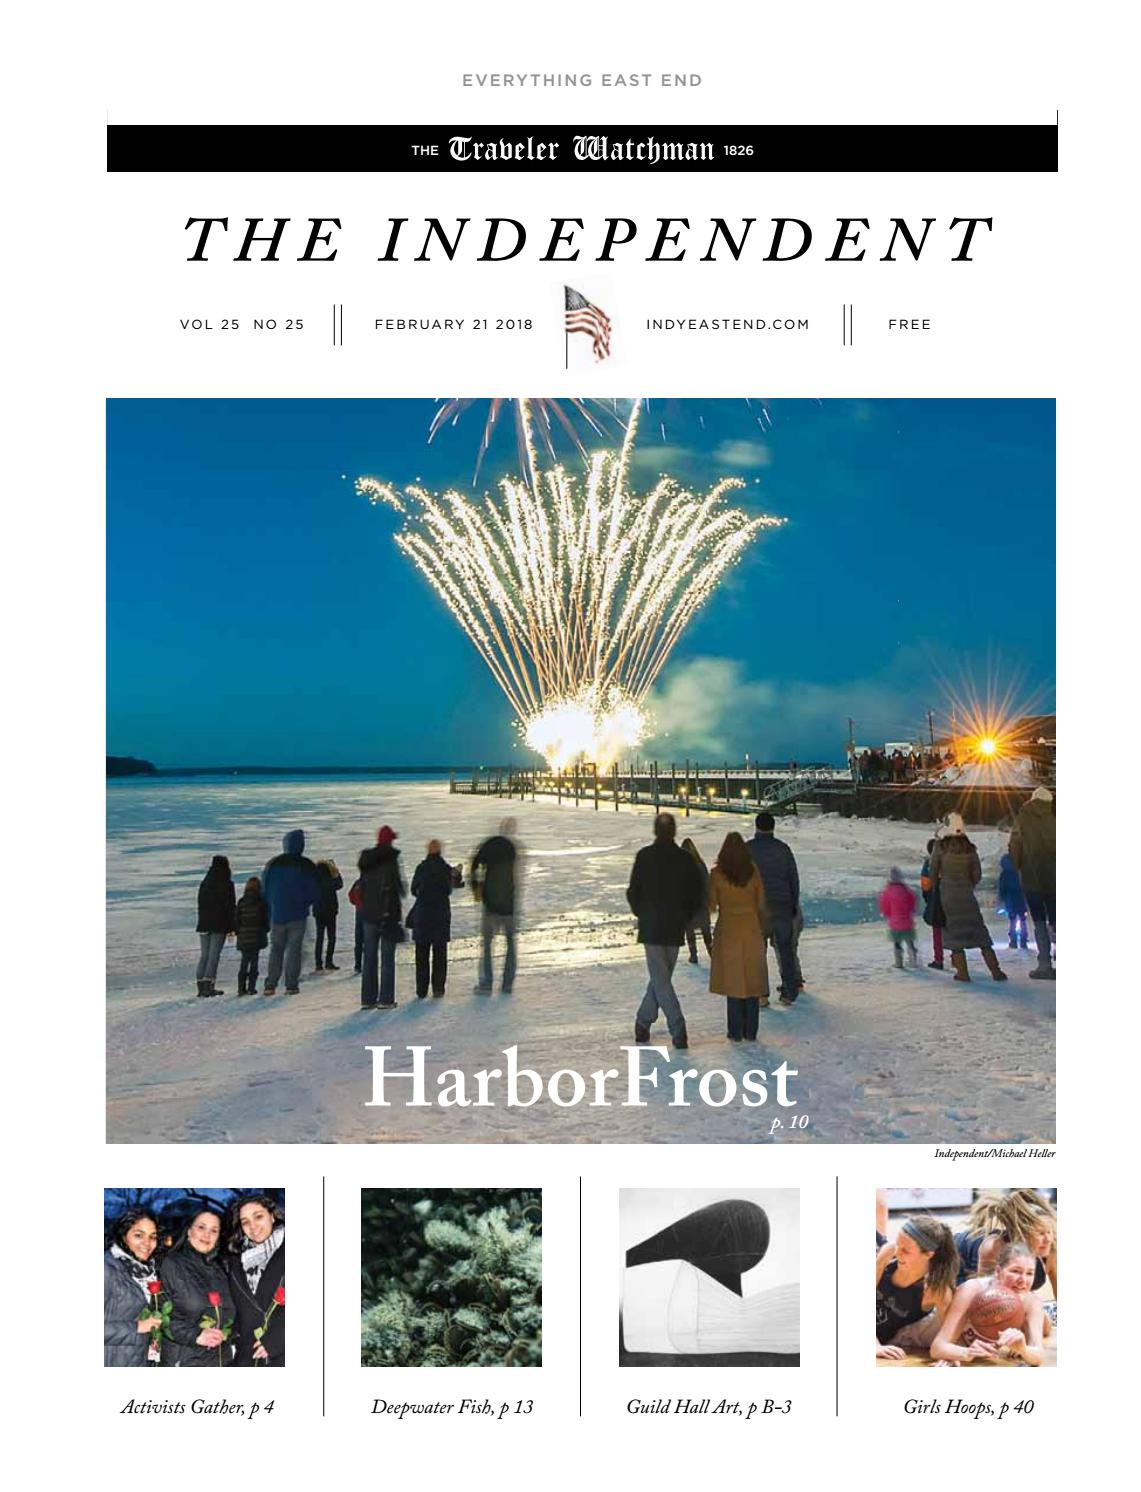 N&r 2 Porn independent 2-21-18the independent newspaper - issuu